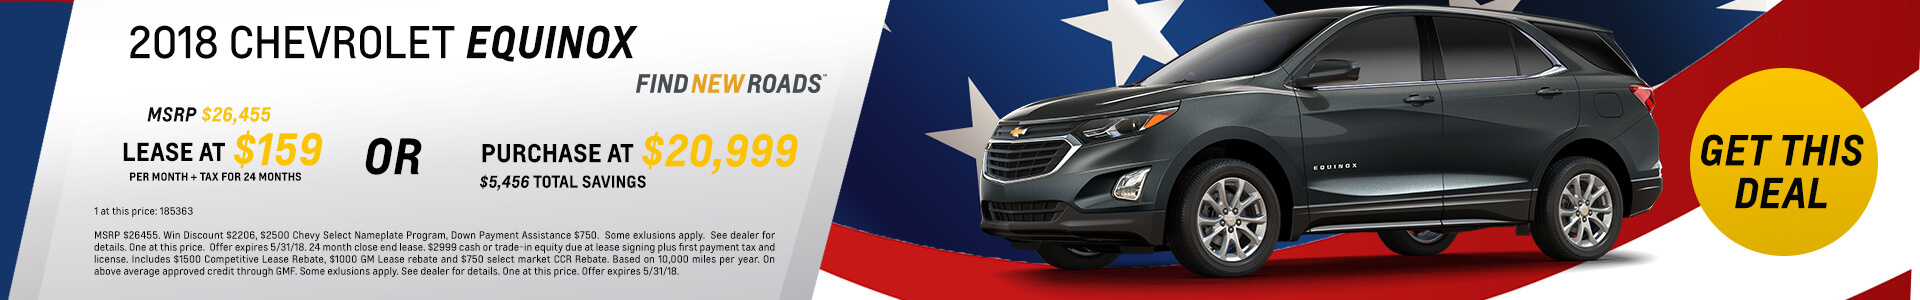 2018 Chevy Equinox $159